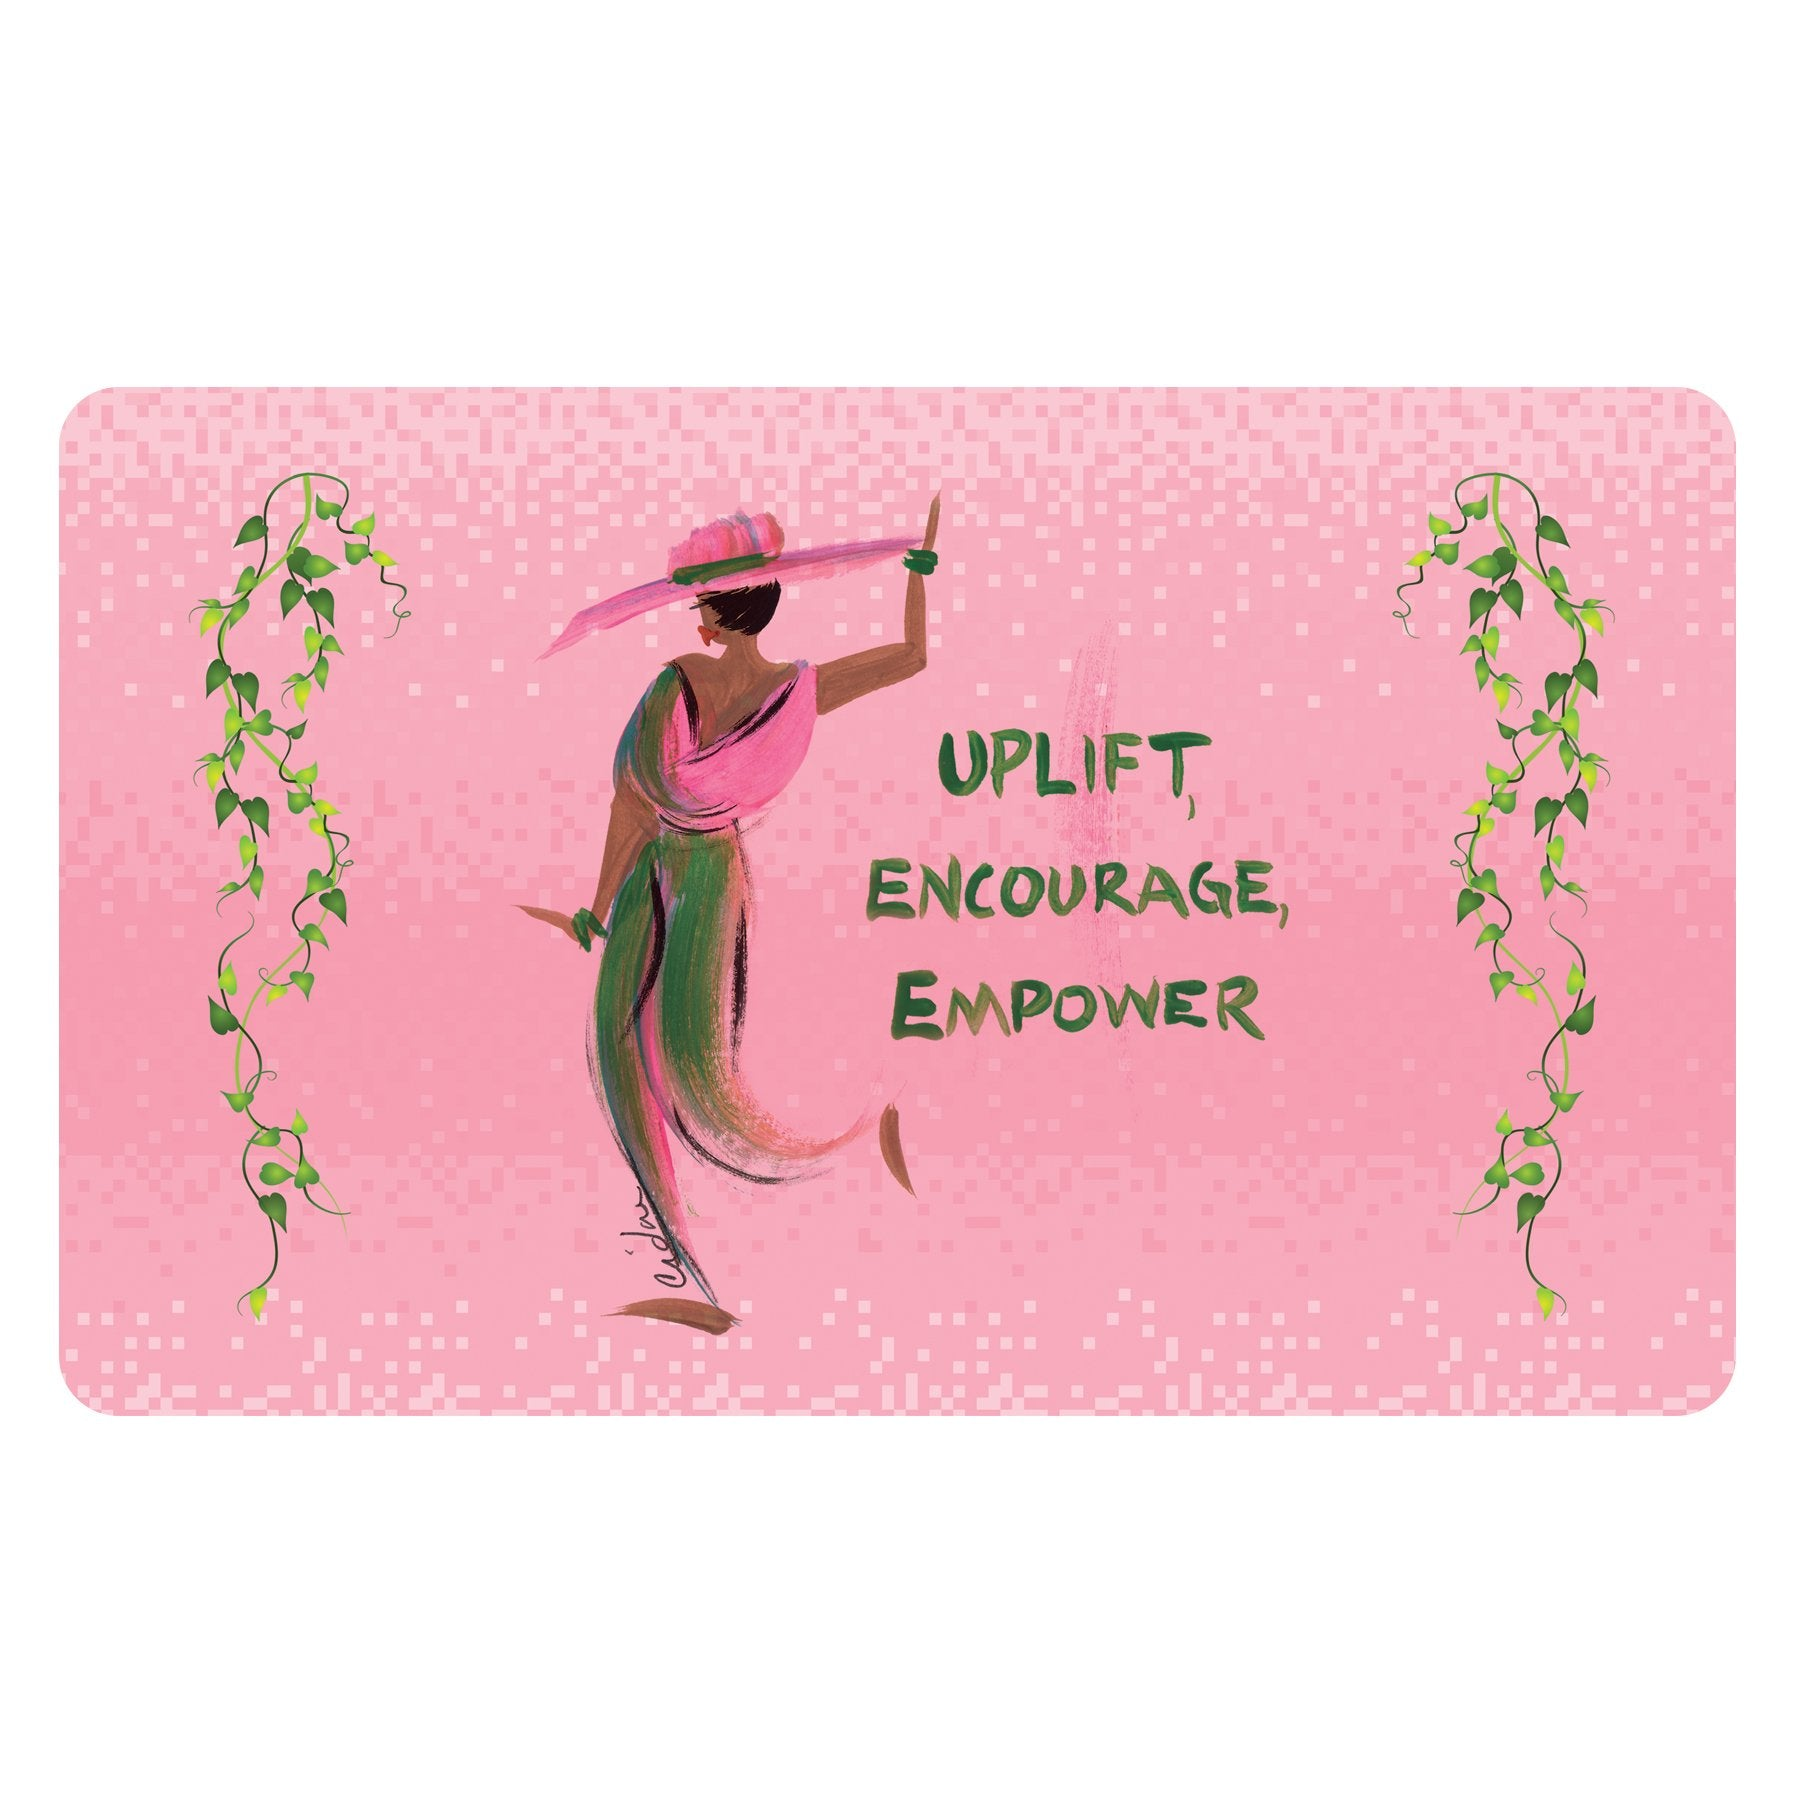 Uplift, Encourage and Empower: Alpha Kappa Alpha Interior Floor Mat